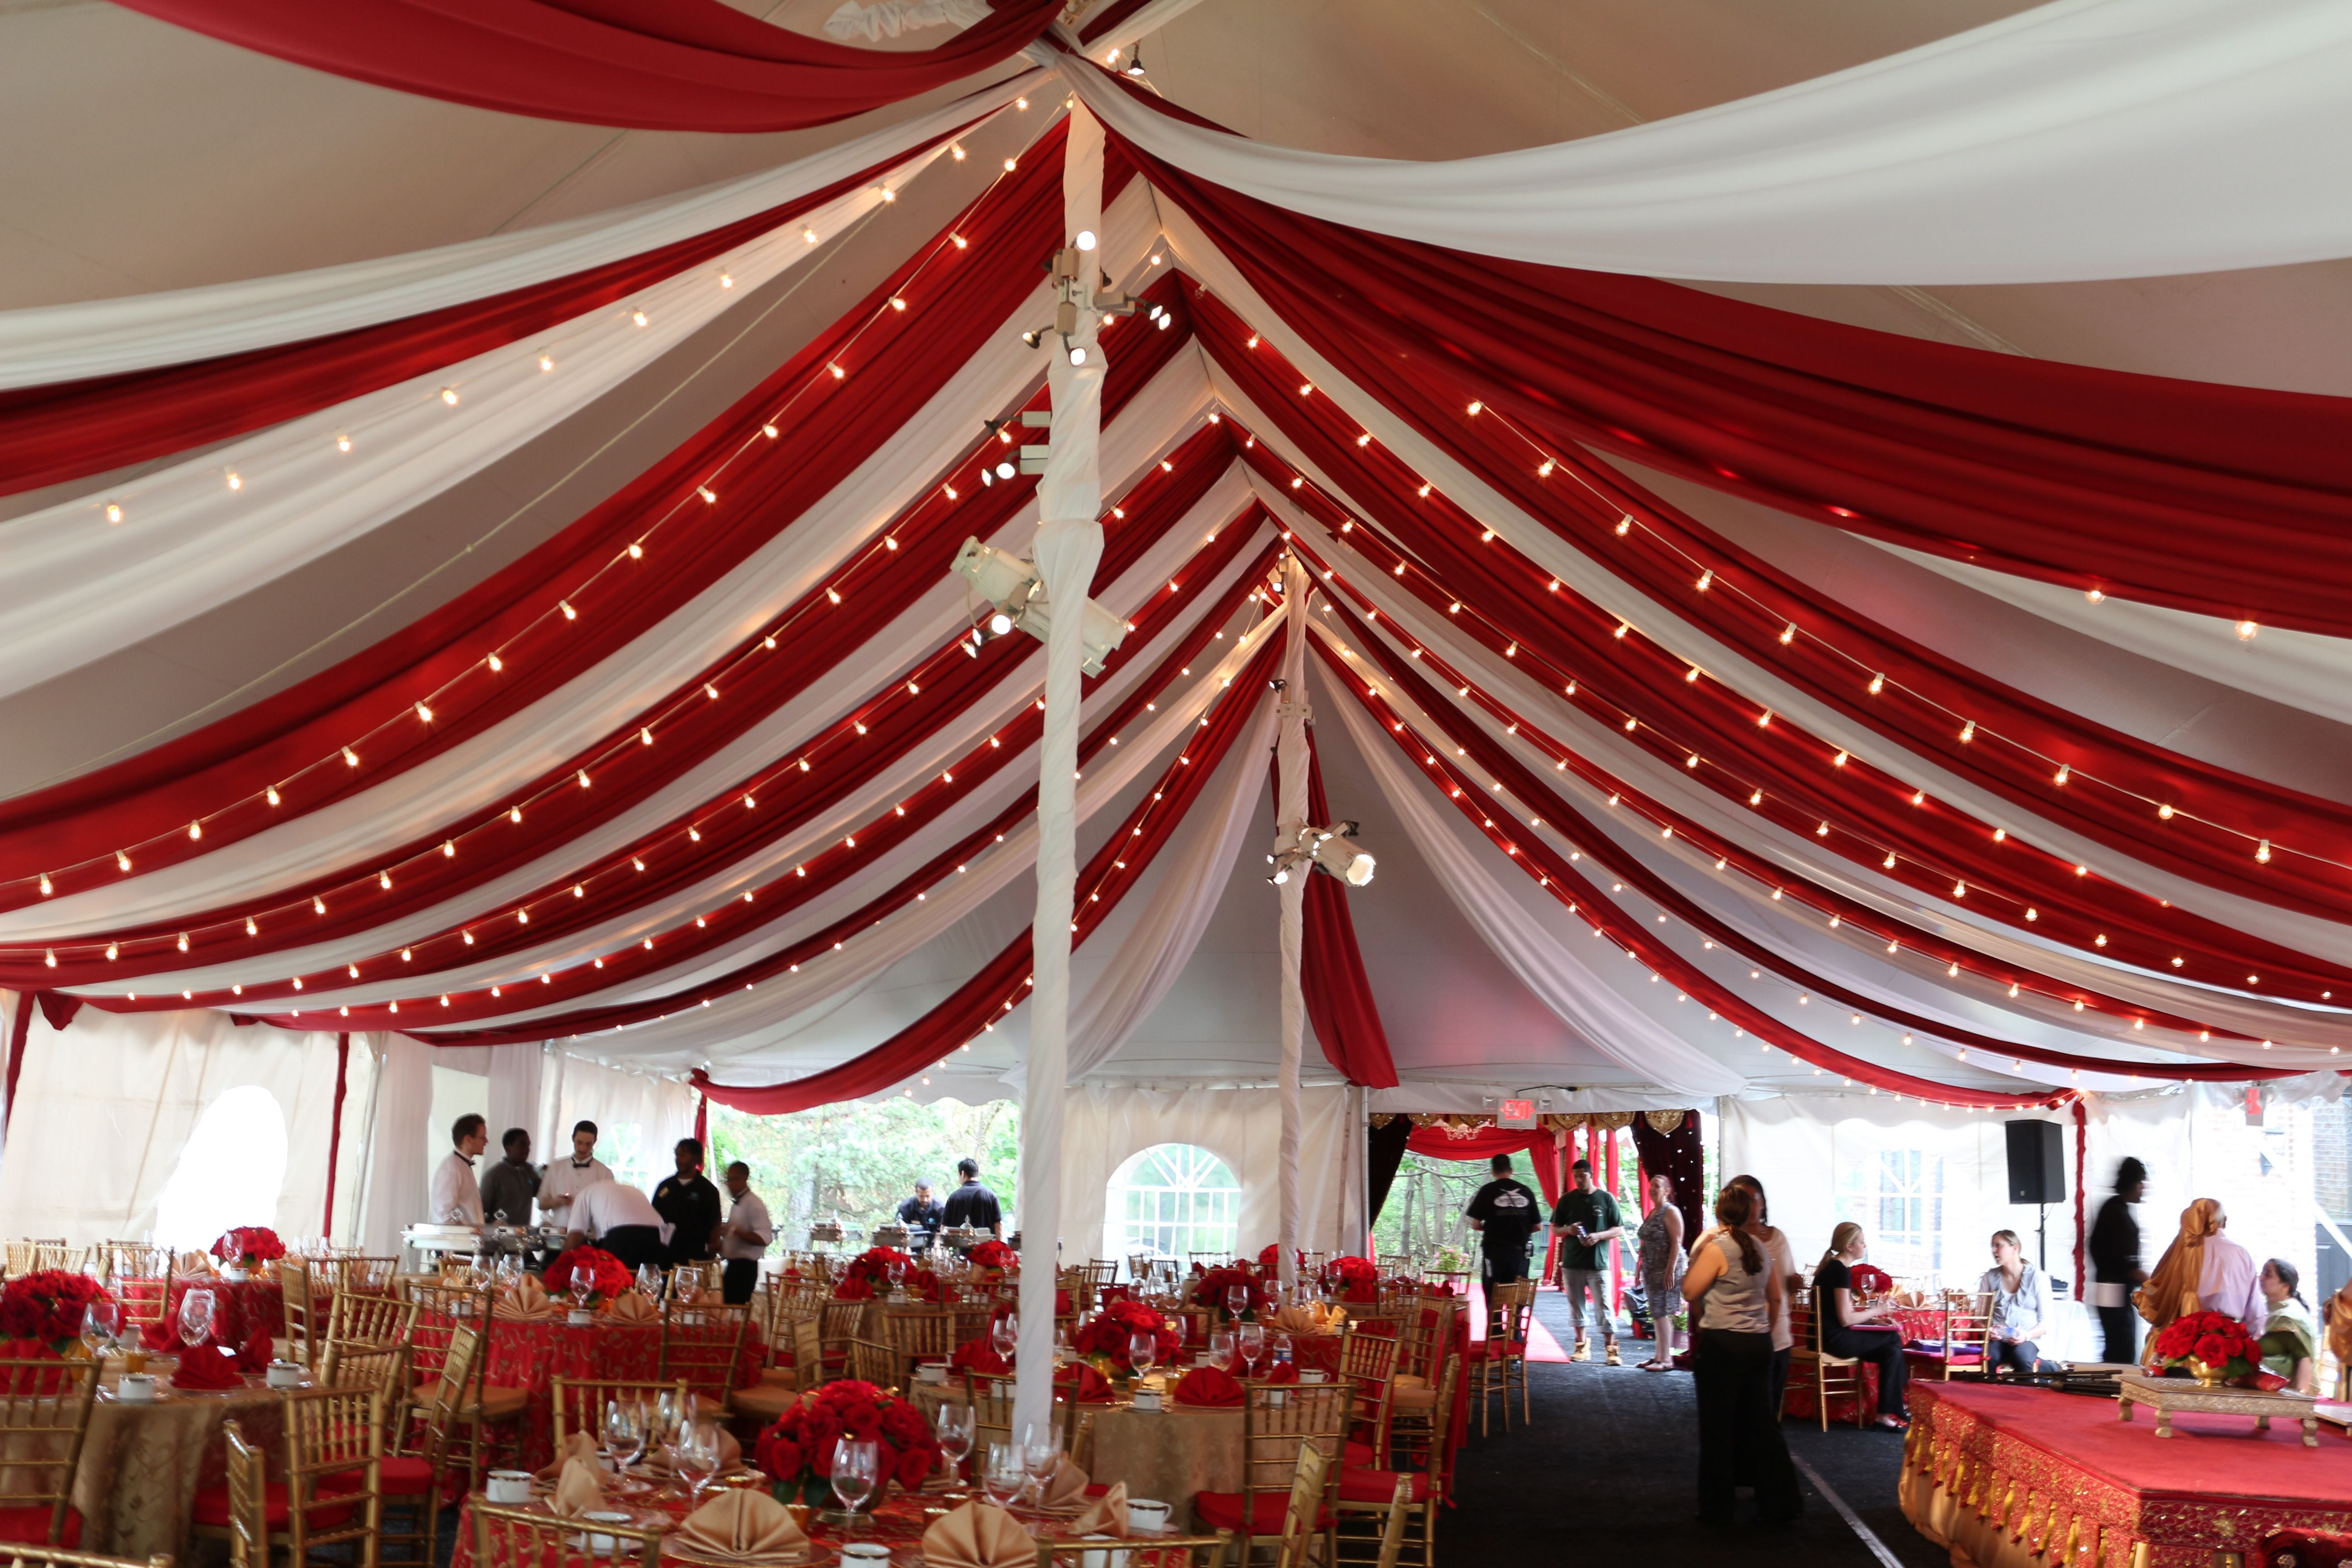 Red and white drape tent liner, uplighting, string